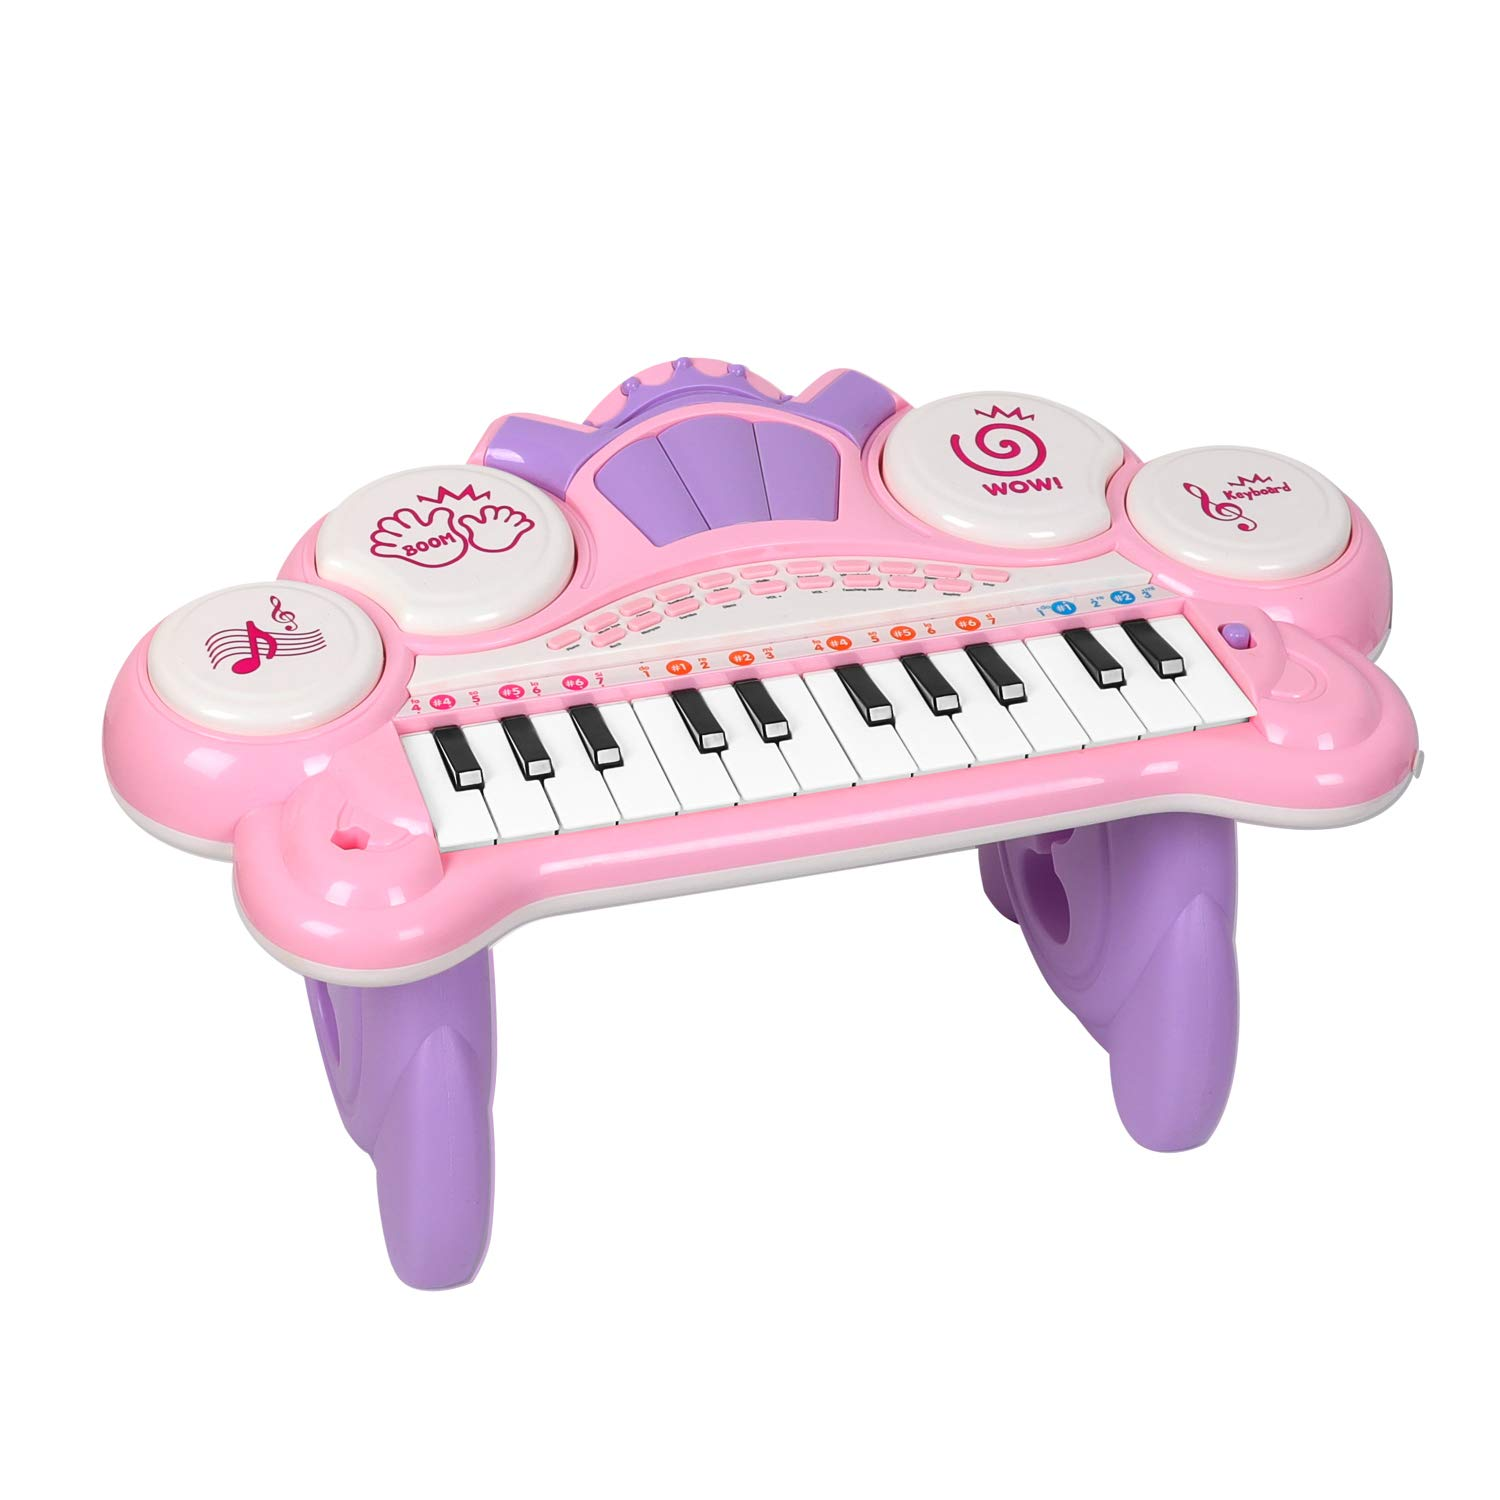 M SANMERSEN Mini Piano Keyboard, 24 Keys LED Light Piano for Kids with Teaching Mode Musical Instrument Toy for 1-4 Years Old Girls, Best Birthday Gift for Kids by M SANMERSEN